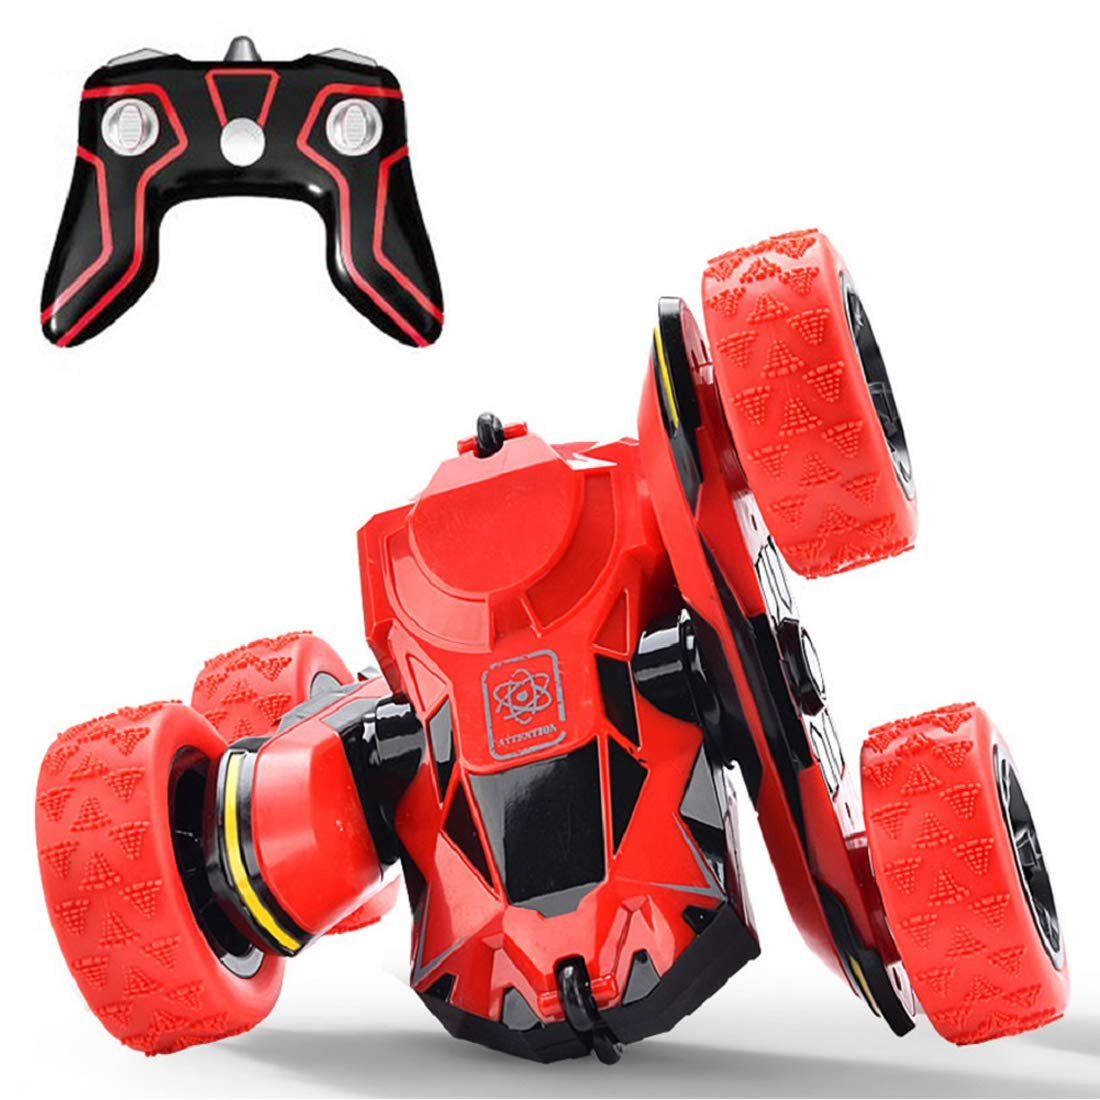 Threeking Rc Stunt Car Remote Control Off-Road Truck Double Sided Tumbling 360 Degree Rotation 3D Deformation Dance Car 1:28 2.4Ghz Rechargeable Stunt Car Great Gift for Kids Red